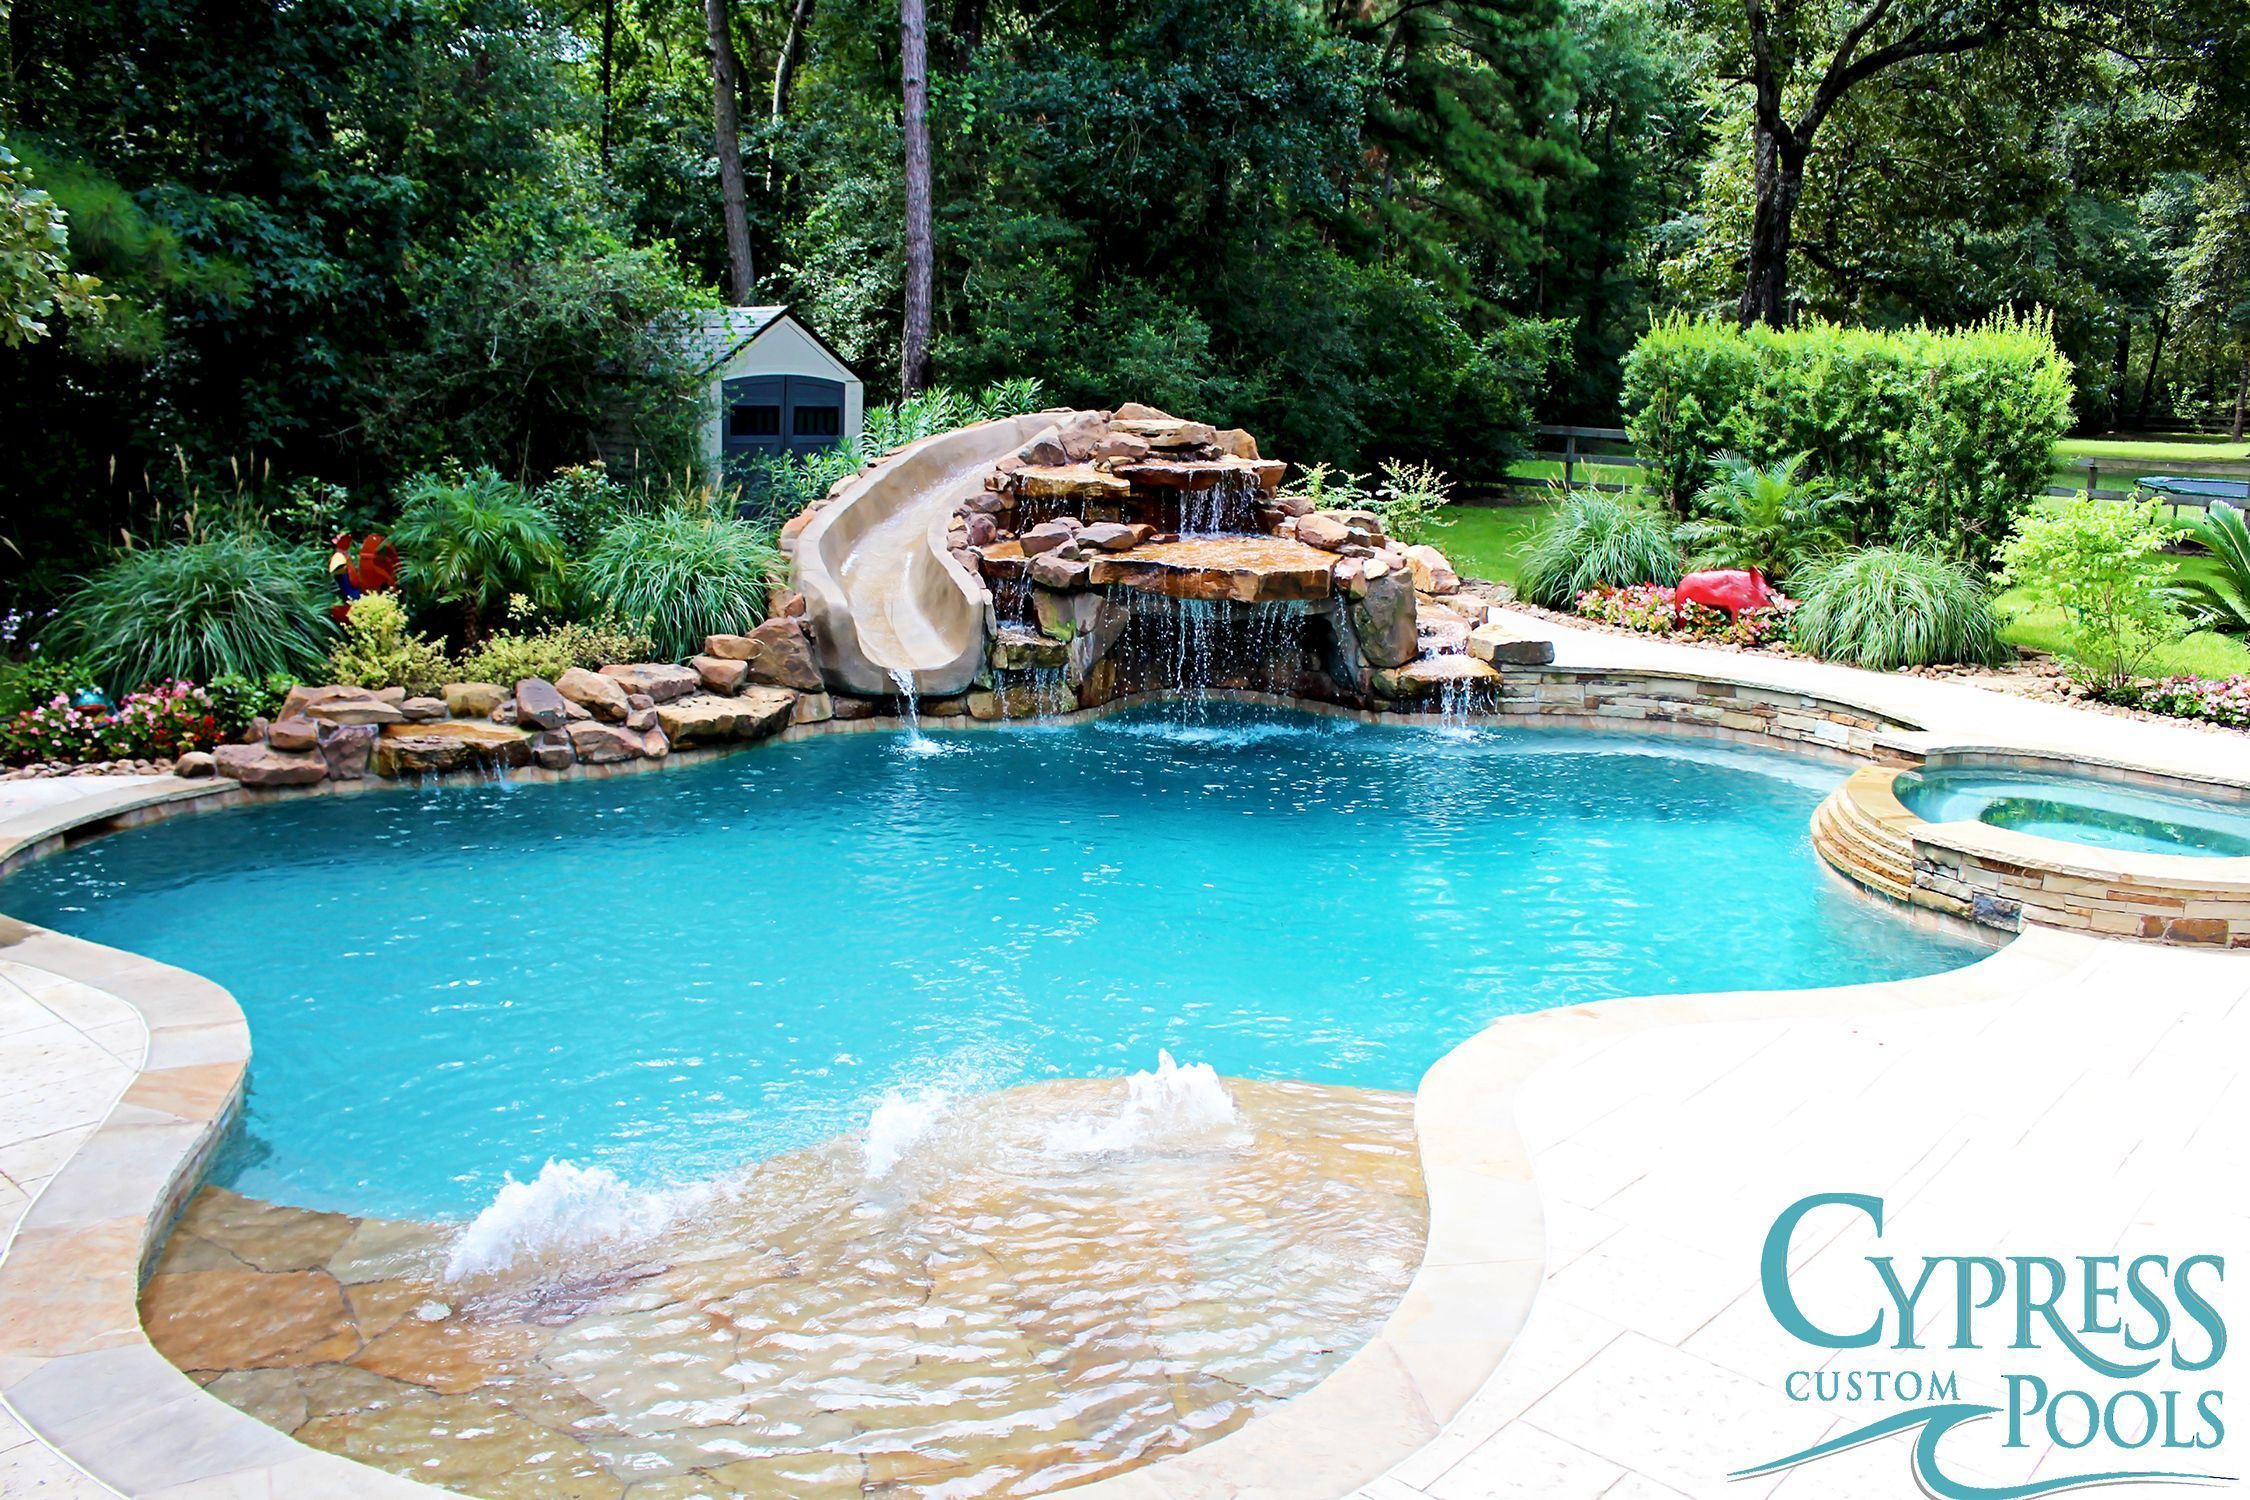 Natural Freeform Pool with Waterfall #PoolLandscapingIdeas ... |Small Freeform Pools With Waterfalls